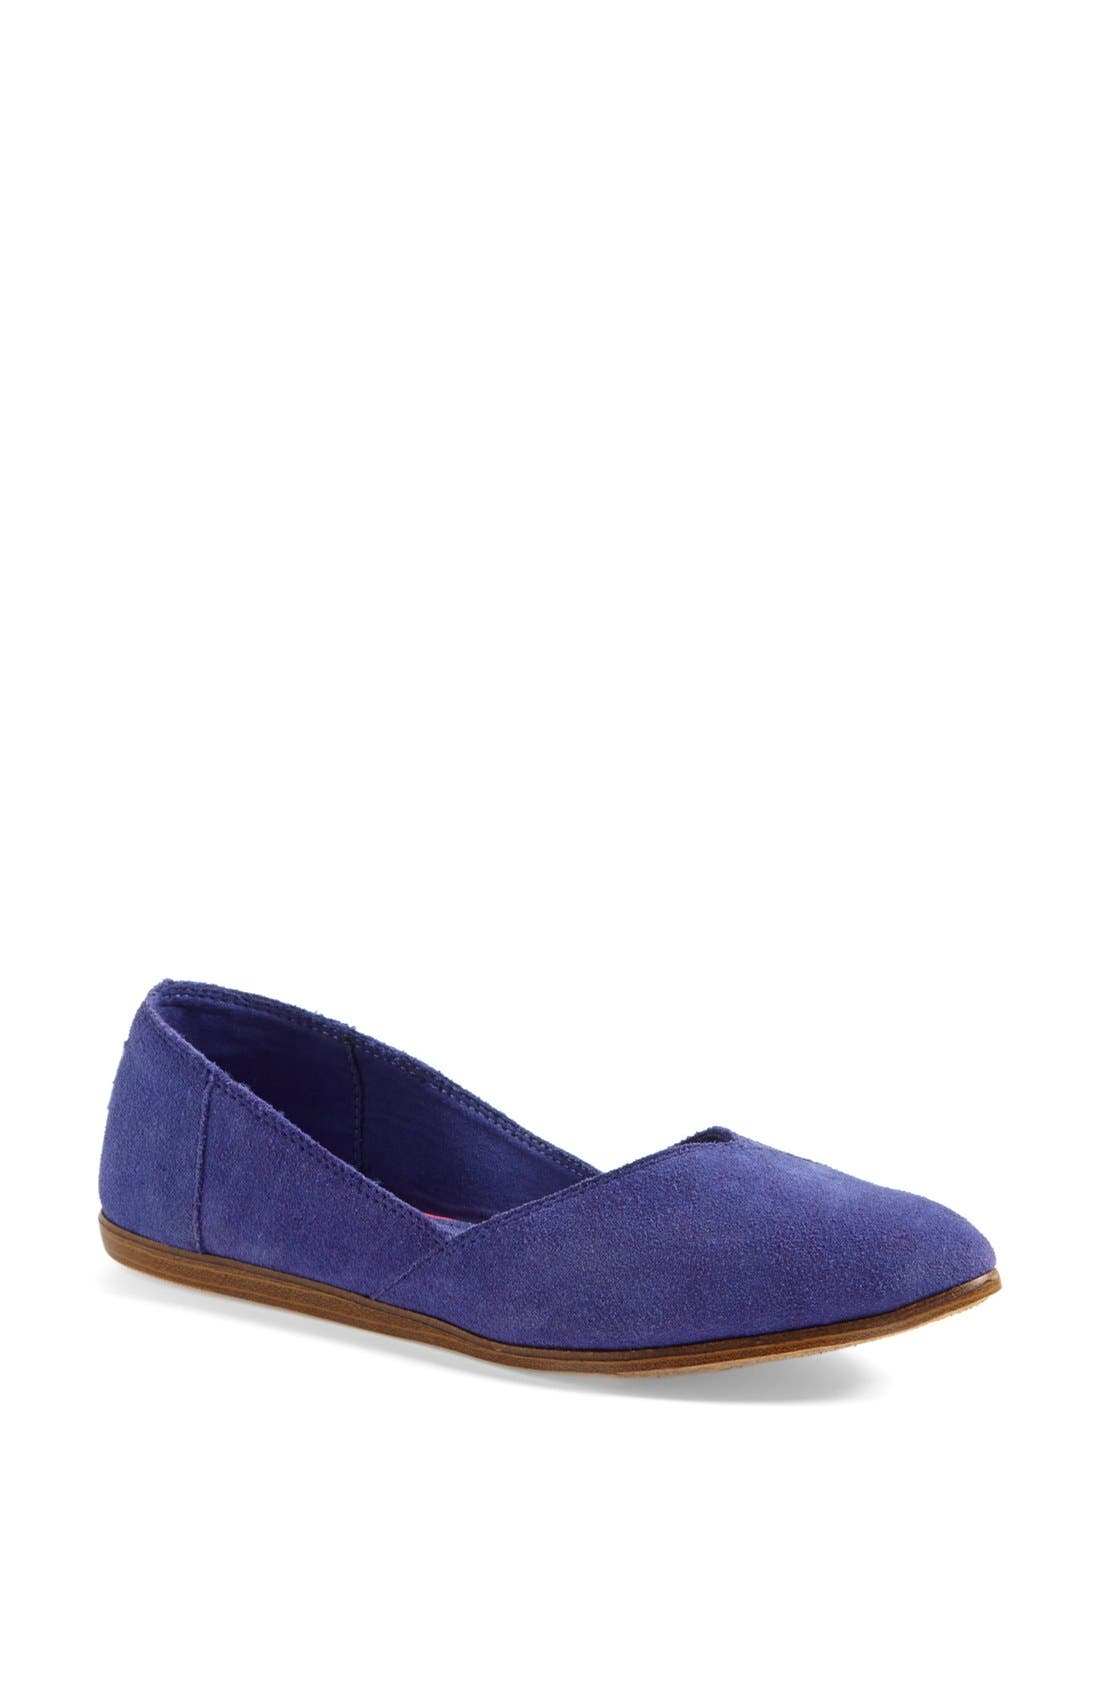 Alternate Image 1 Selected - TOMS 'Jutti' Slip-On (Women)